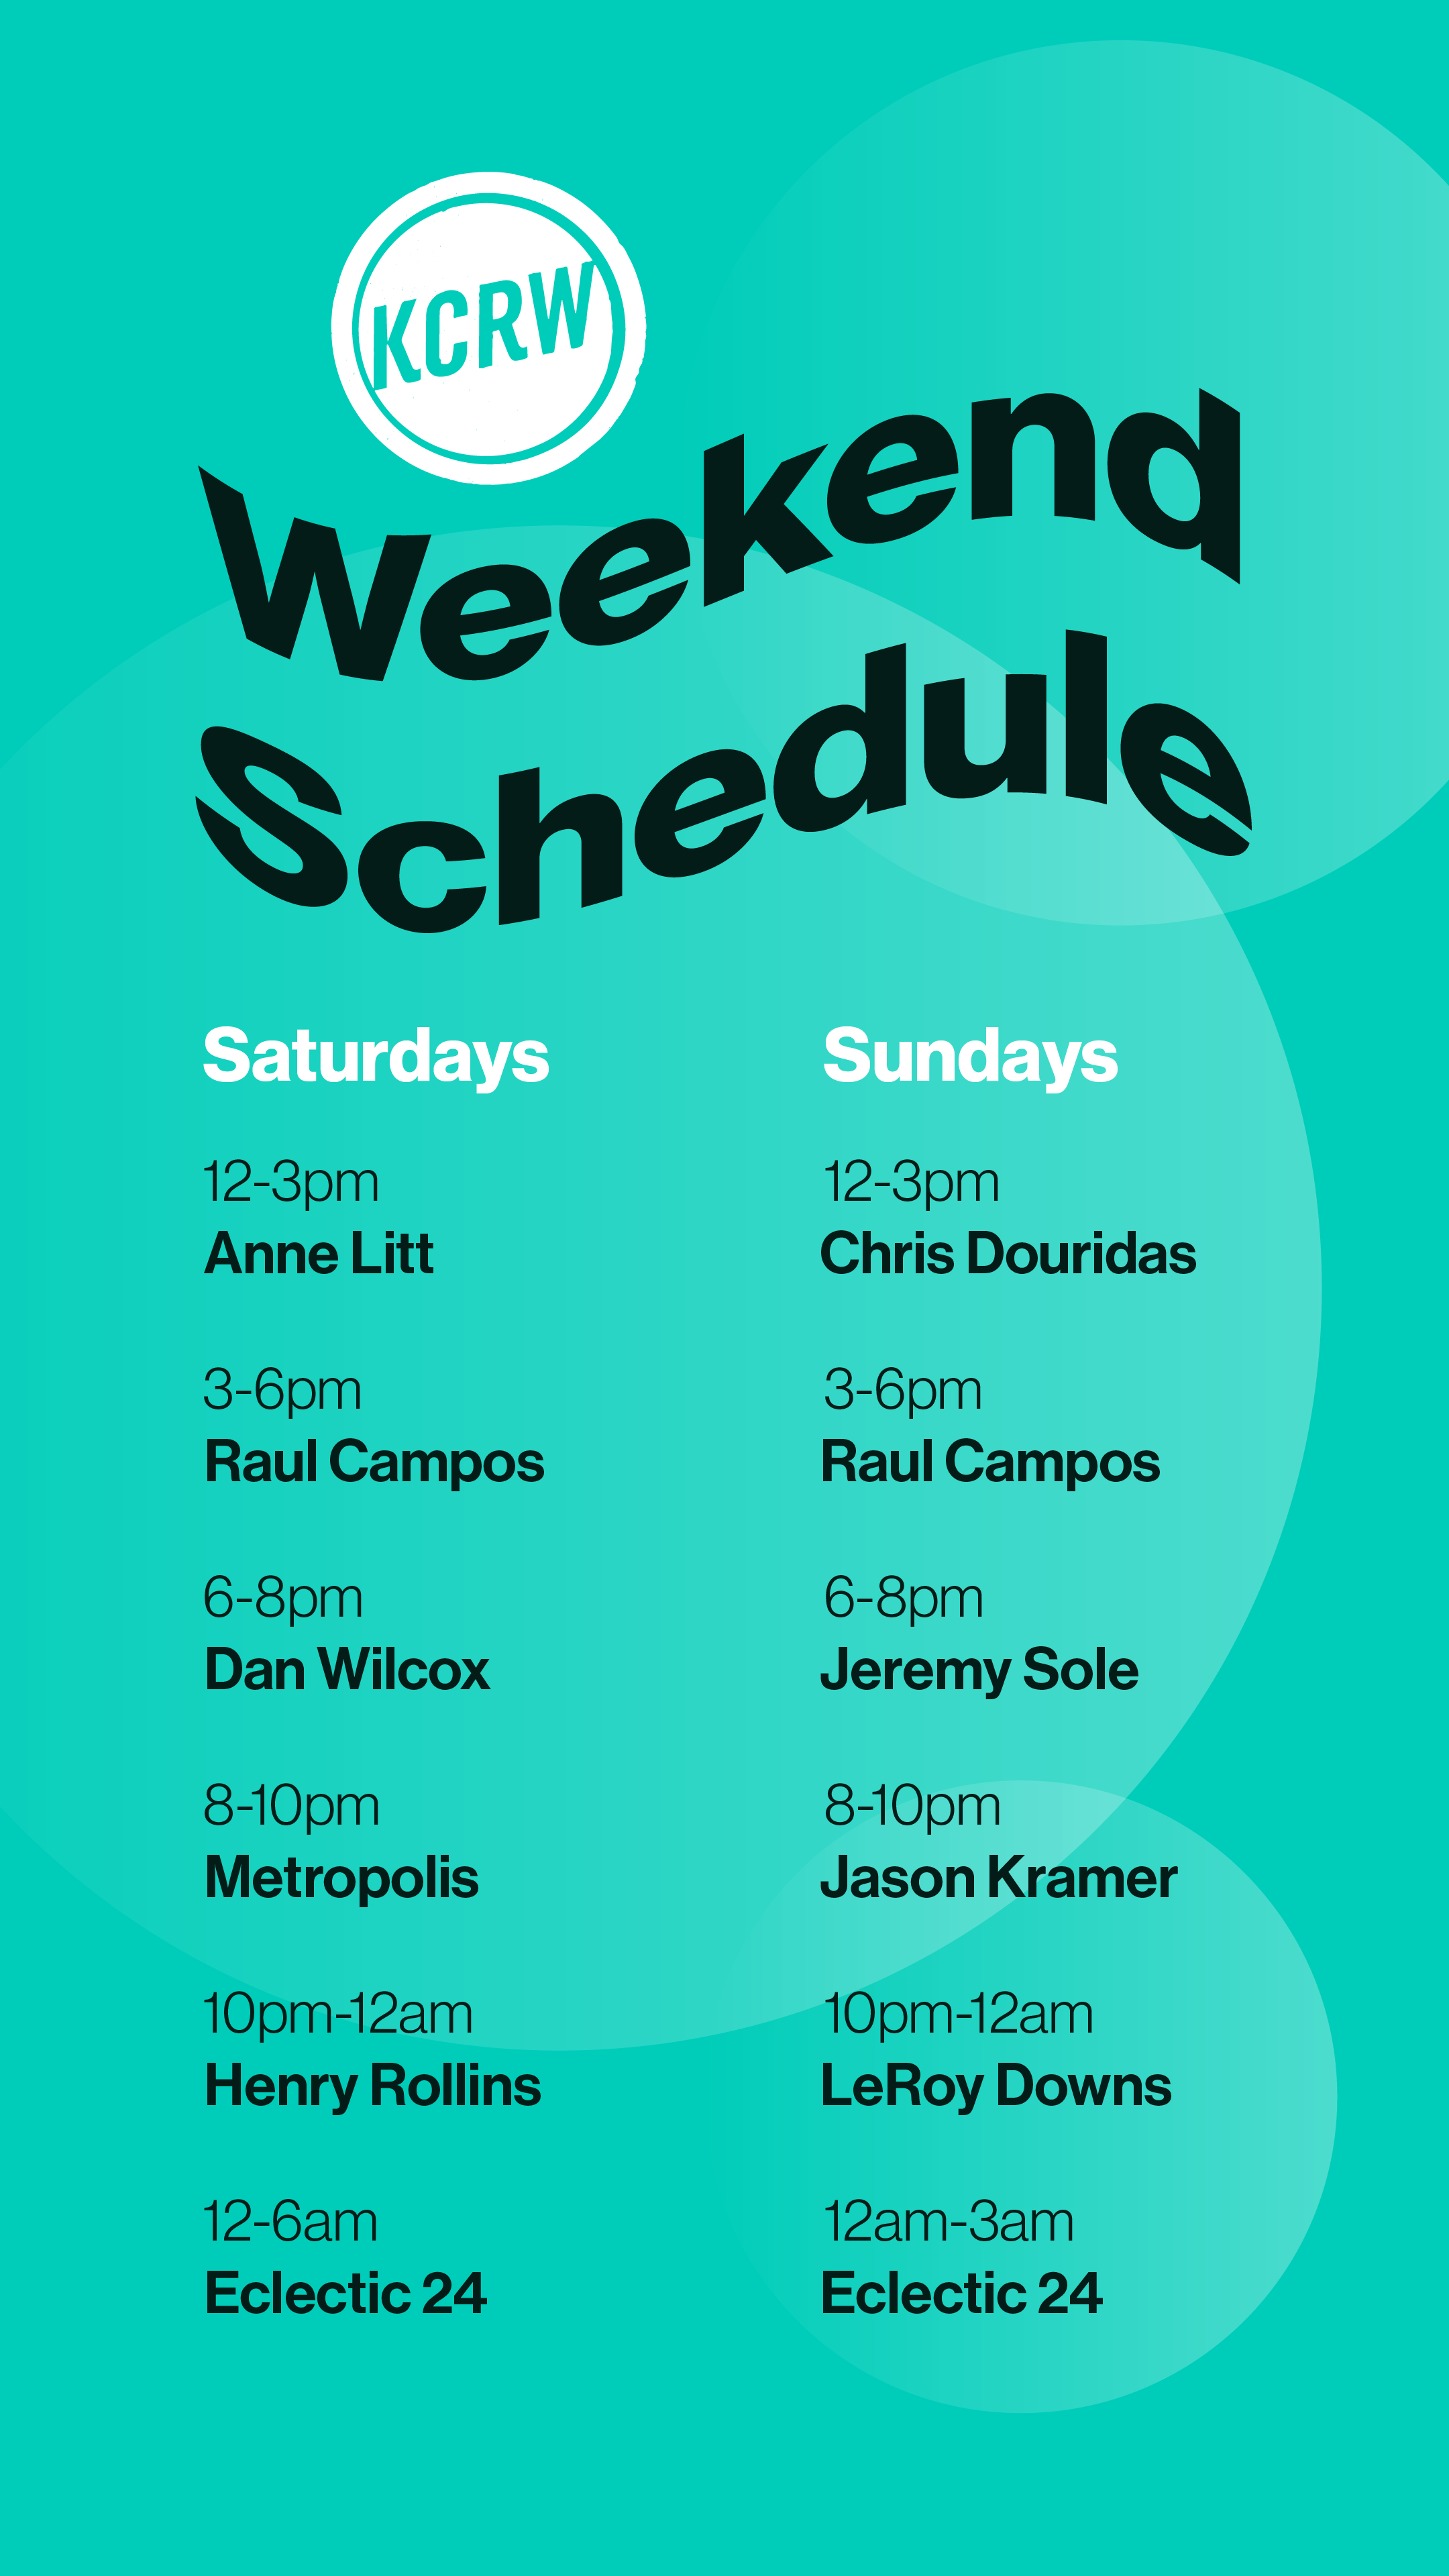 Weekend Schedule  Saturday, March 07 12-3pmRaul Campos 3-6pmAnne Litt 6-8pmDan Wilcox 8-10pmMetropolis 10-midHenry Rollins  Sunday, March 21 12-3pmRaul Campos 3-6pmAnne Litt 6-8pmDan Wilcox 8-10pmJeremy Sole 10-midLeRoy Downs mid-3amEclectic 24